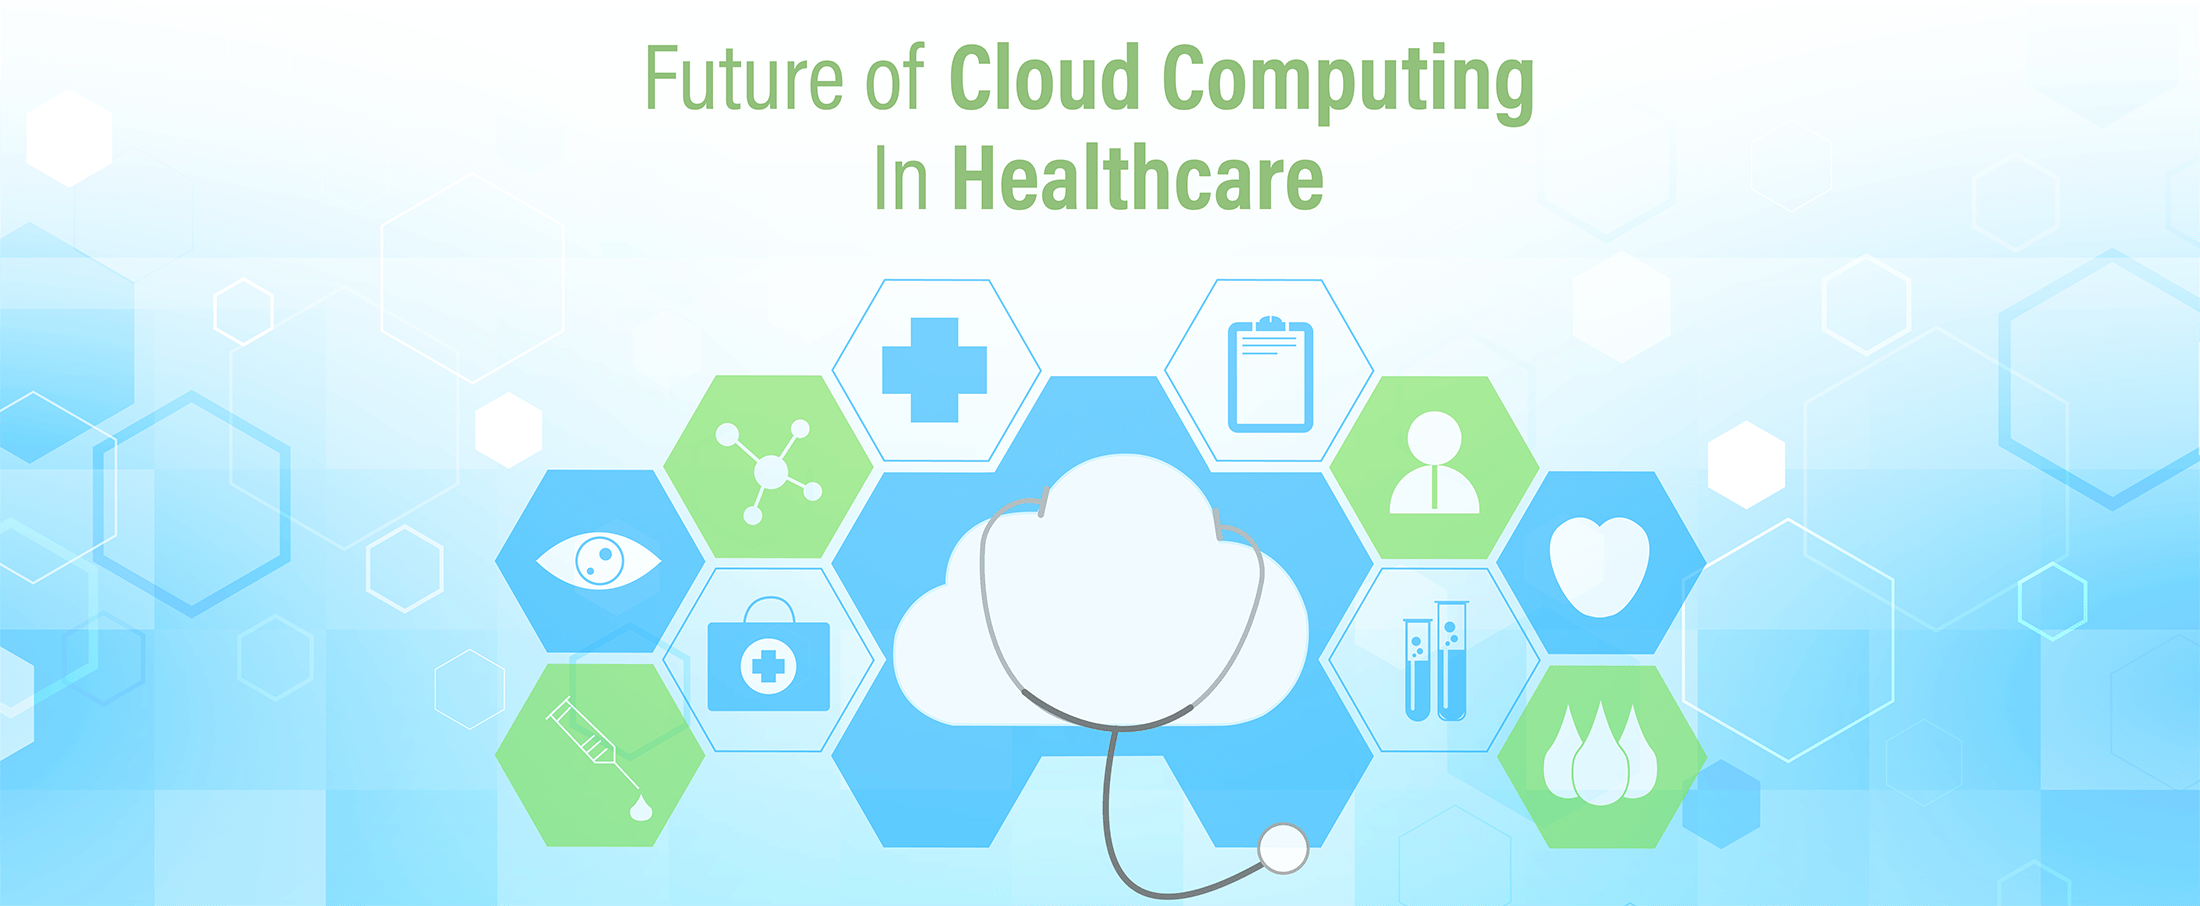 Future of Cloud Computing in Healthcare